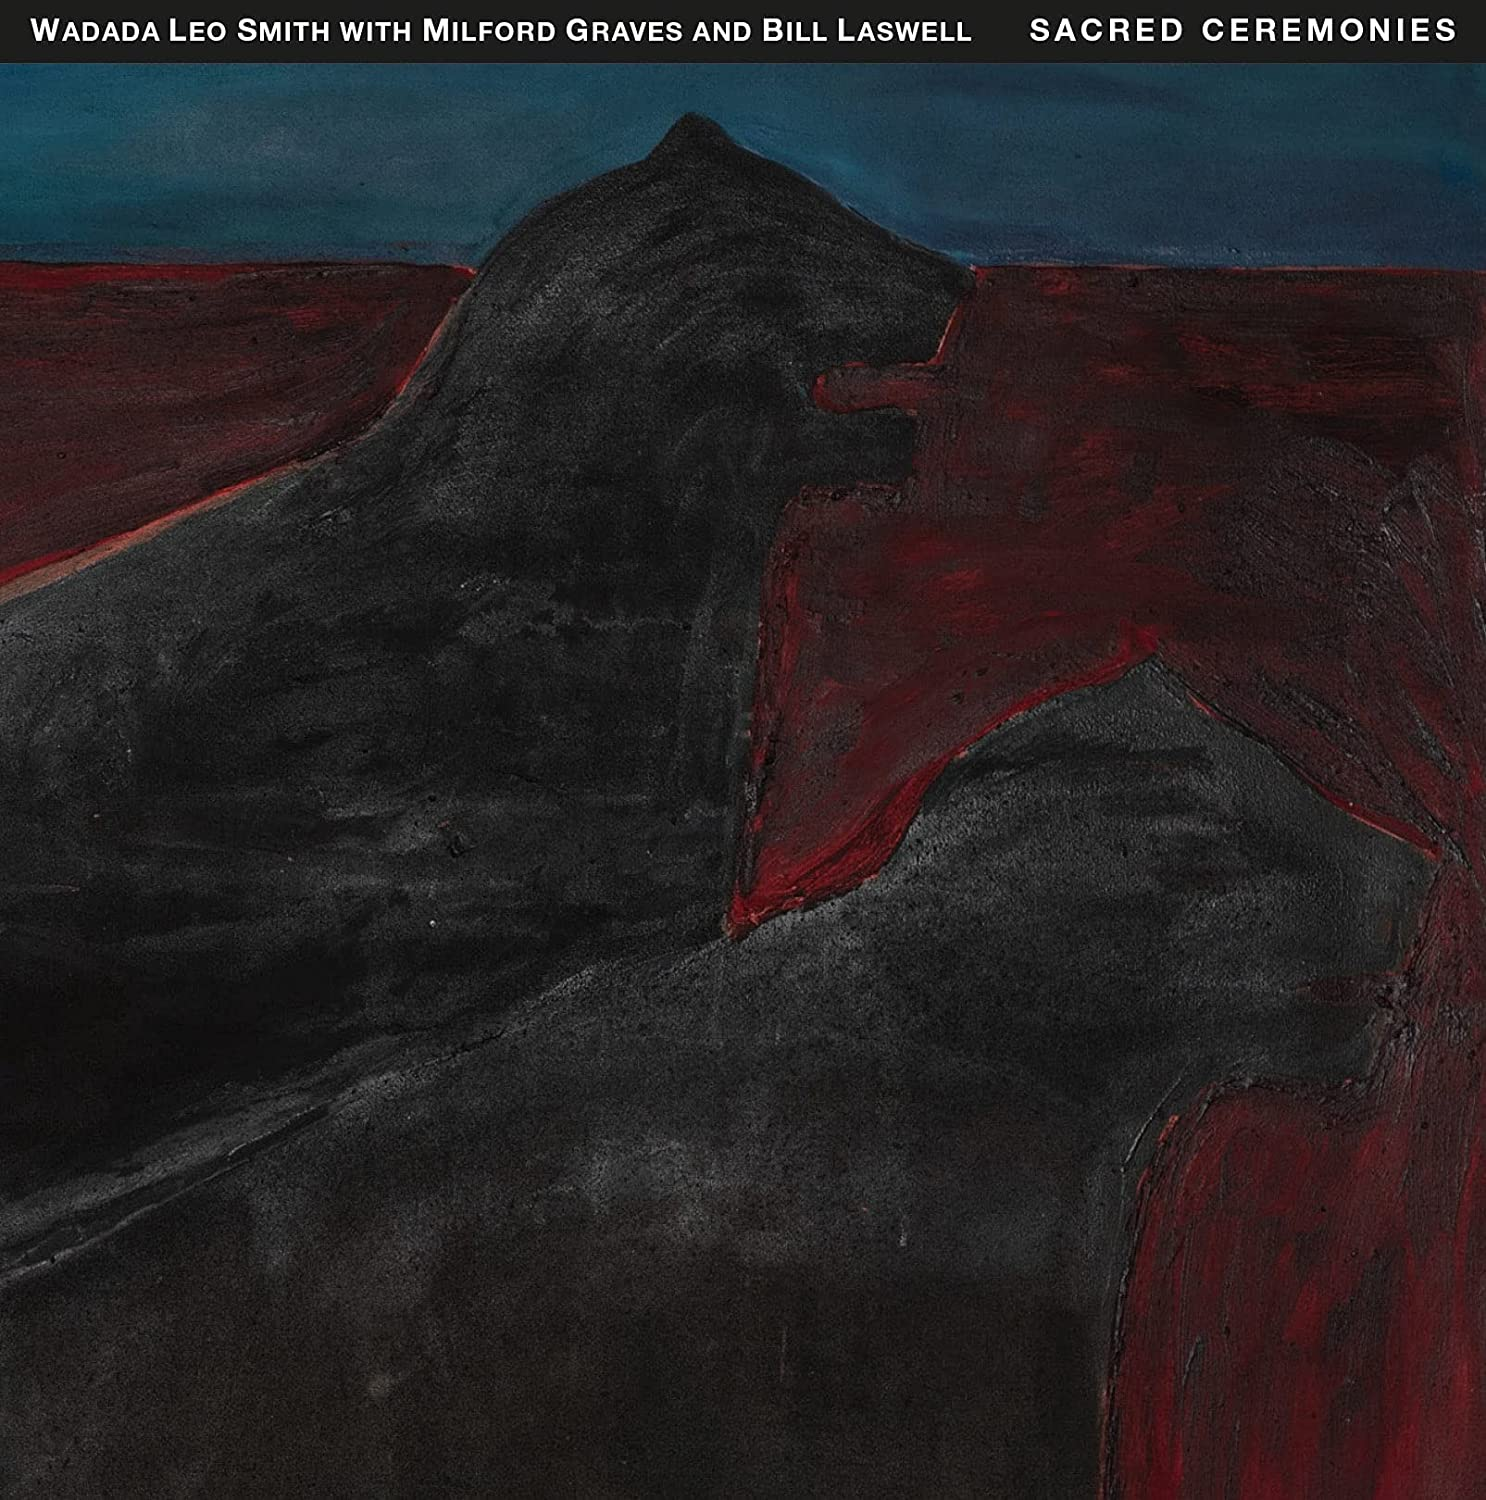 Wadada Leo Smith with Milford Graves and Bill Laswell: Sacred Ceremonies